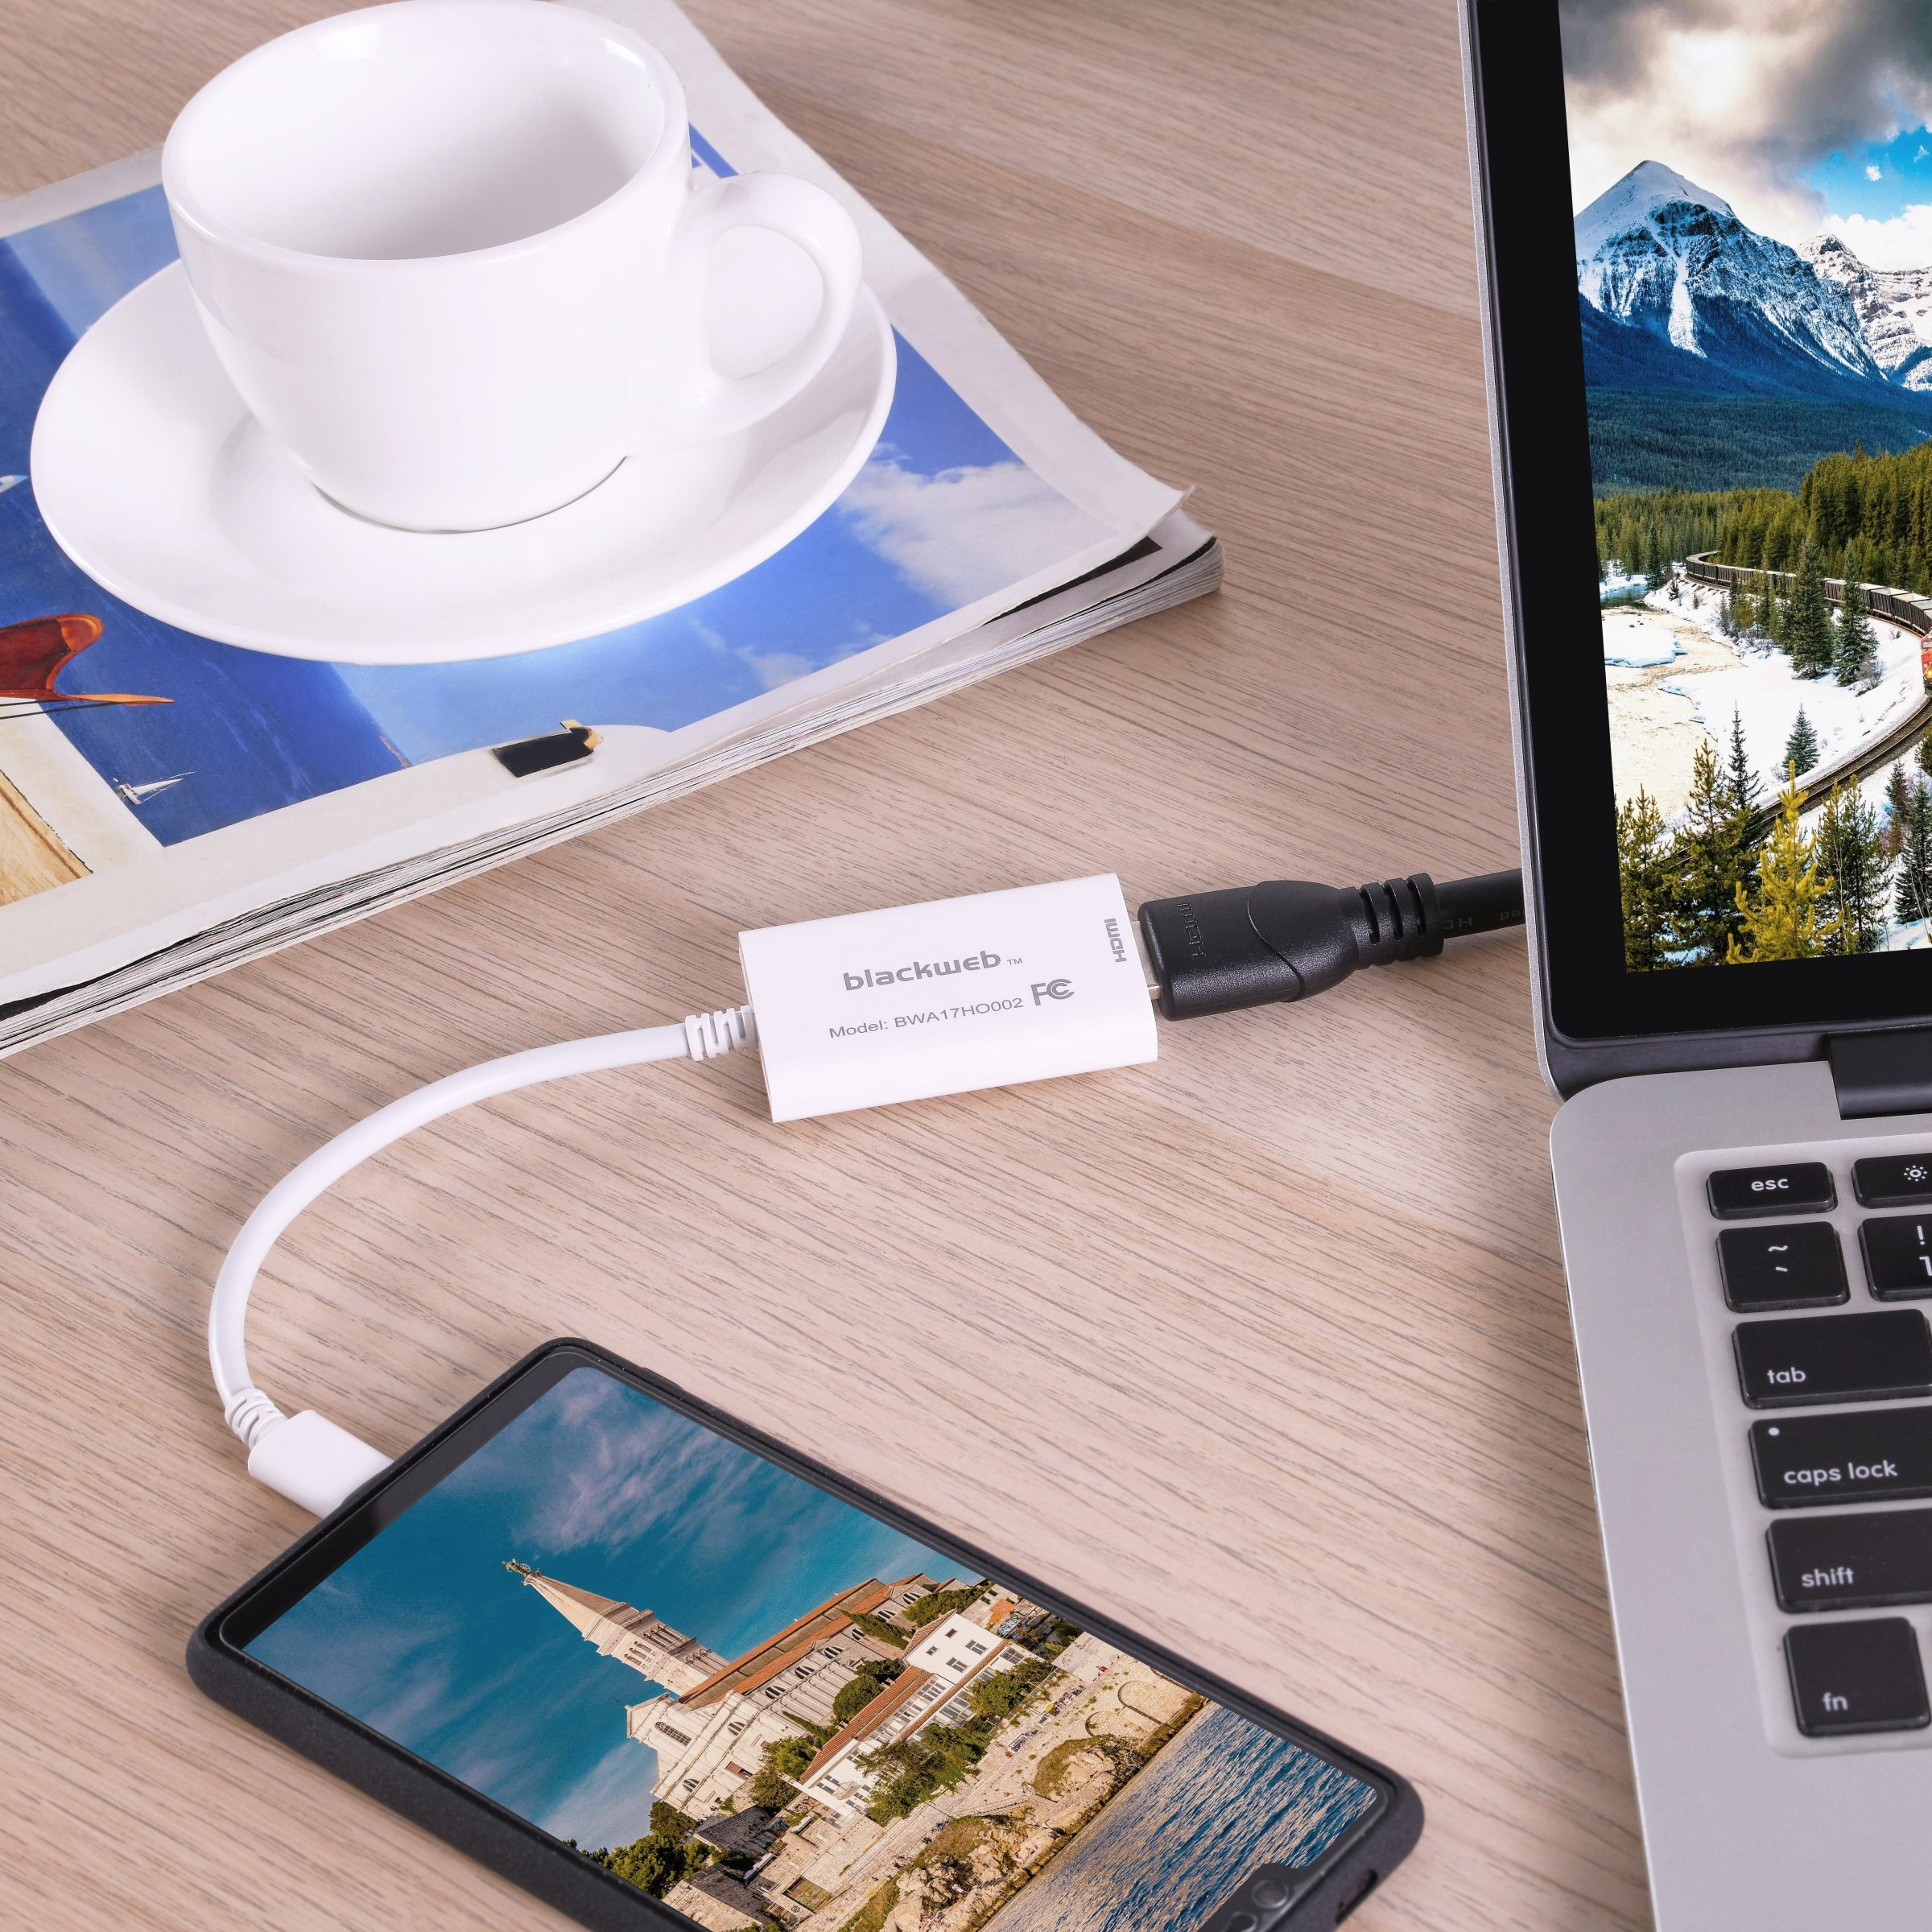 Blackweb Usb-C To Hdmi Adapter, Supports Resolutions Up To 4K At